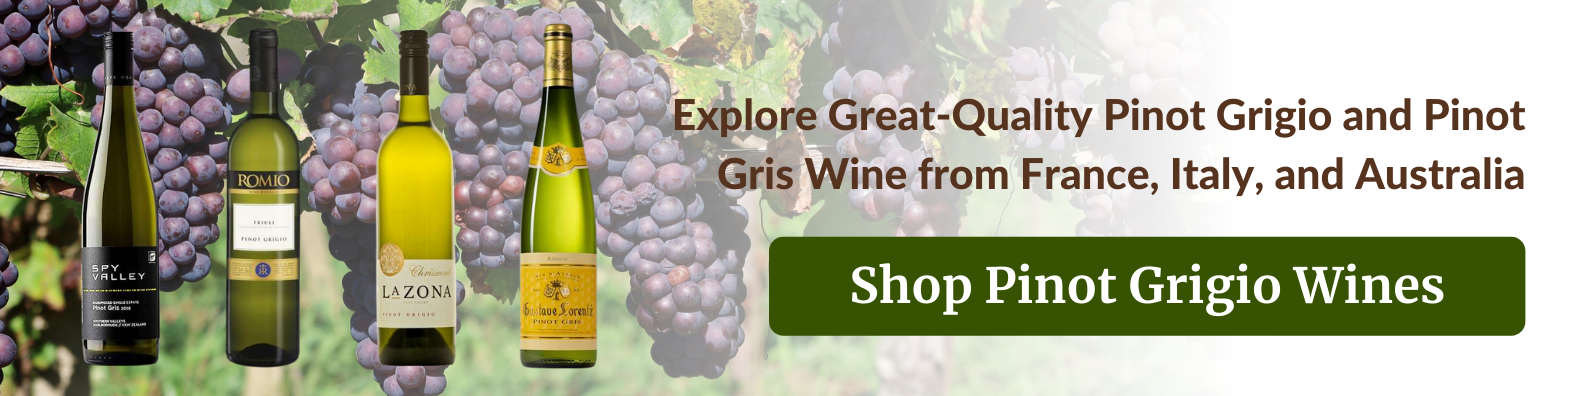 shop pinot grigio and pinot gris wines in the philippines at best prices